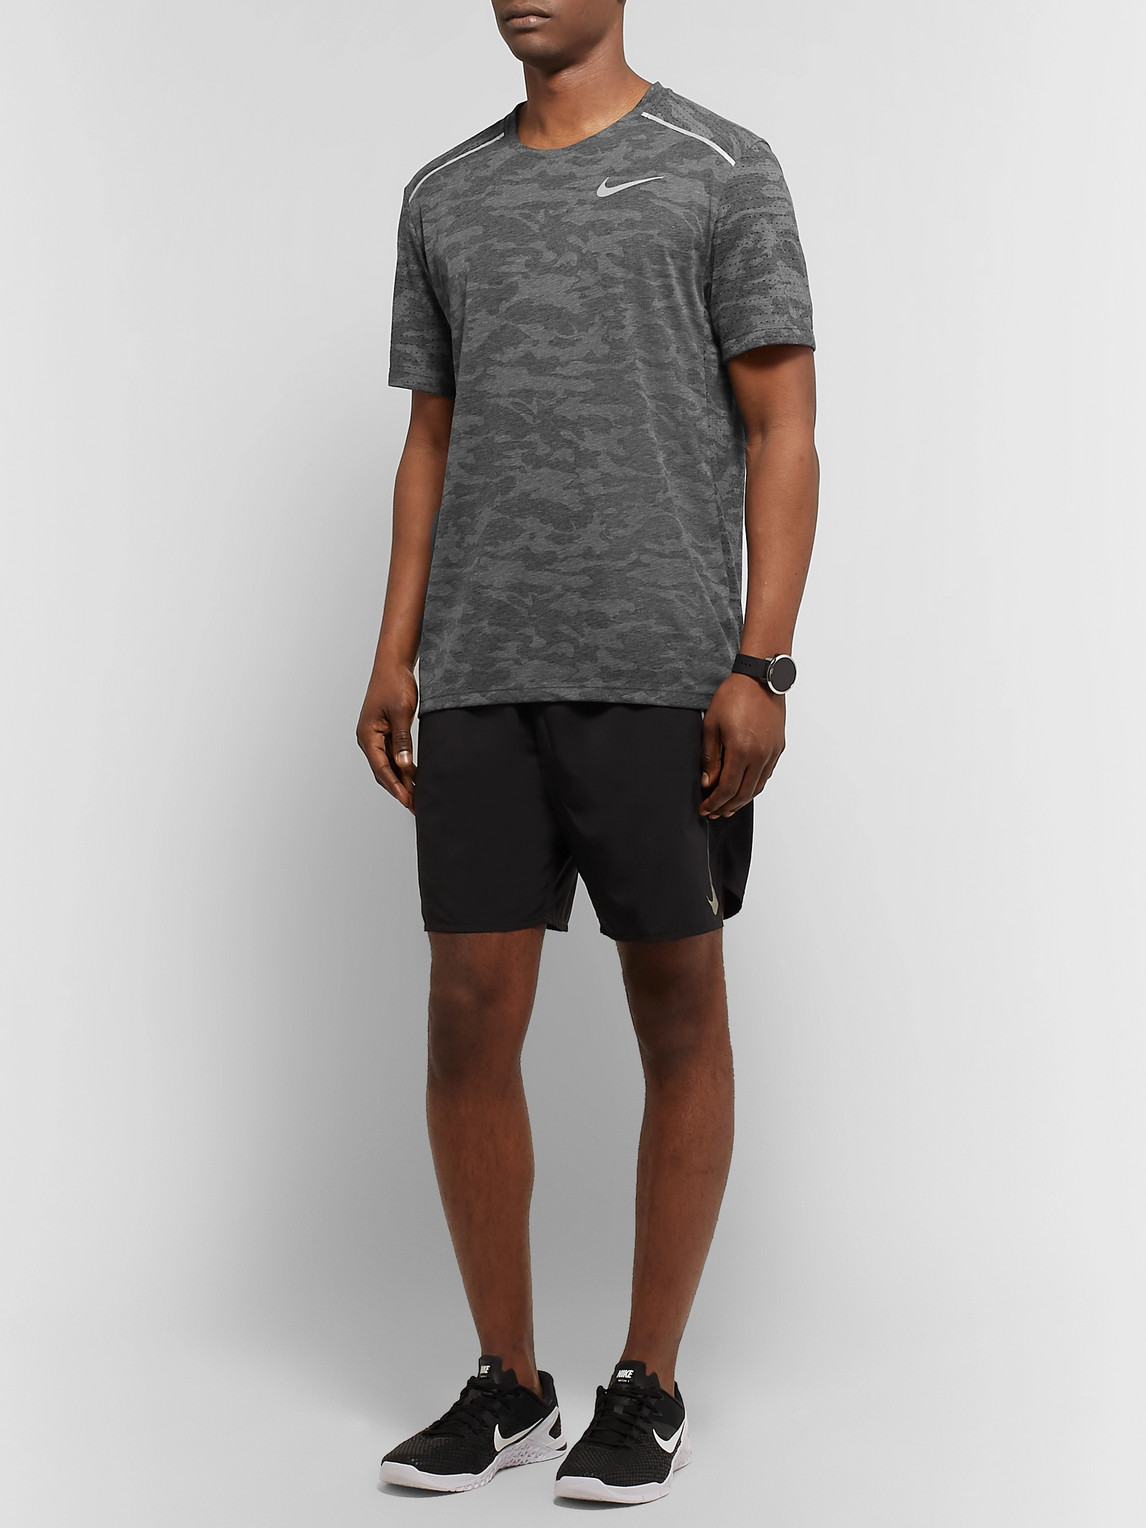 Nike Tops RISE 365 PERFORATED CAMOUFLAGE